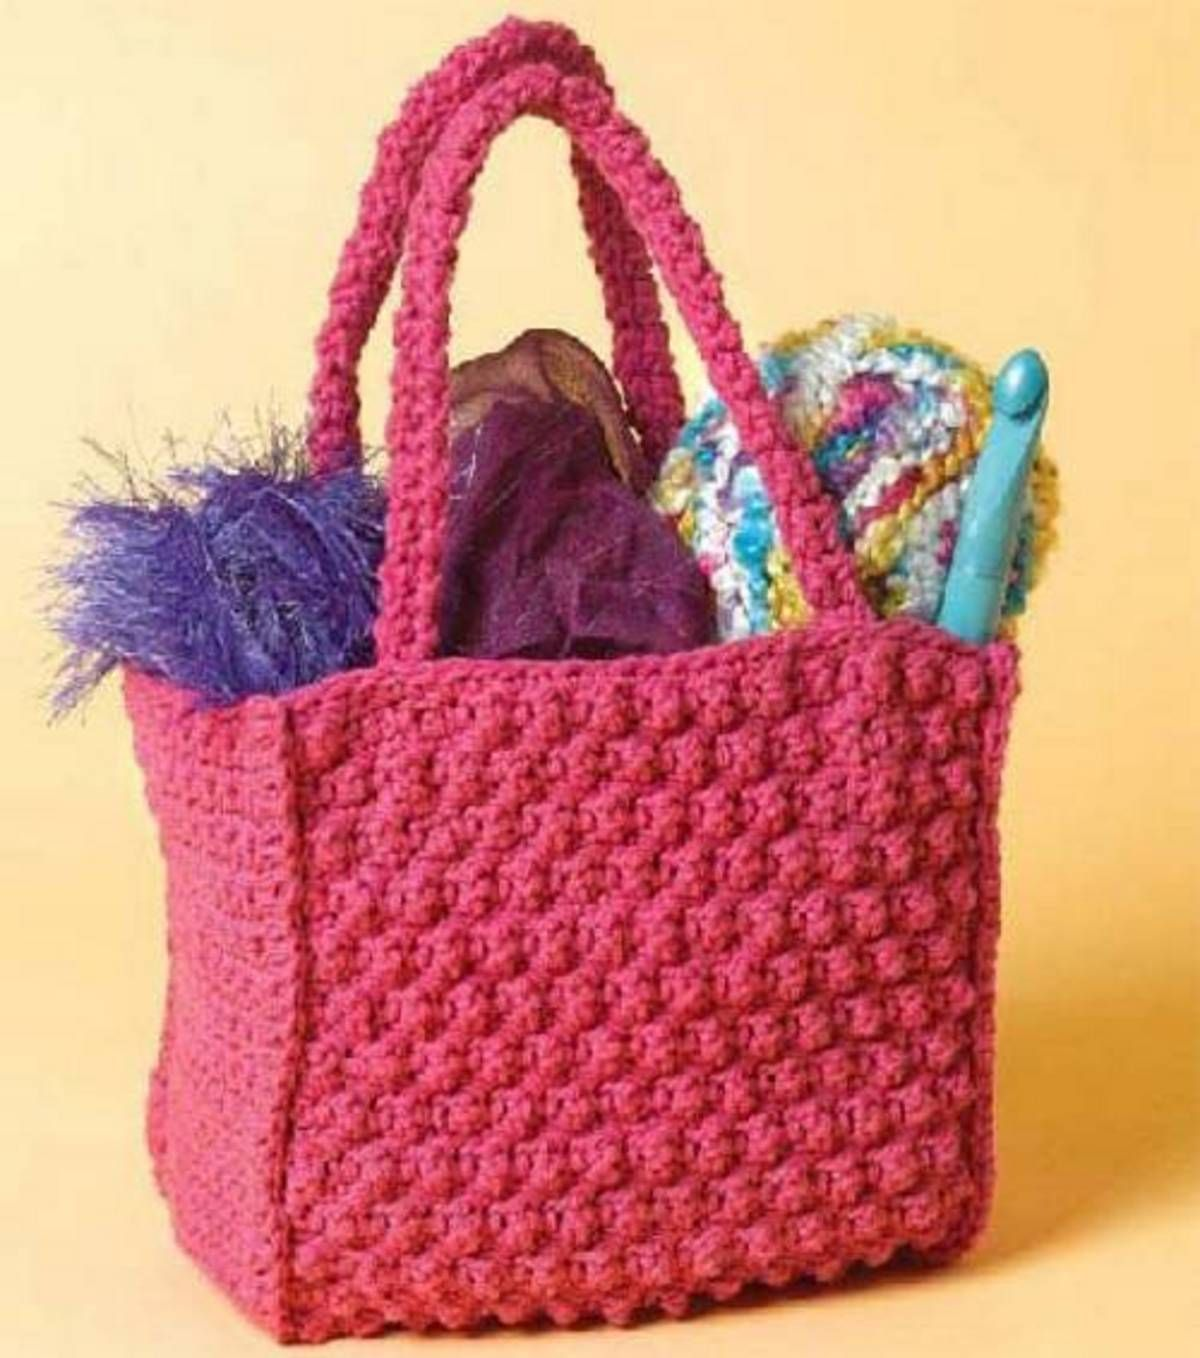 Little Textured Tote FREE PDF : thanks so for share xox | Crochet ...